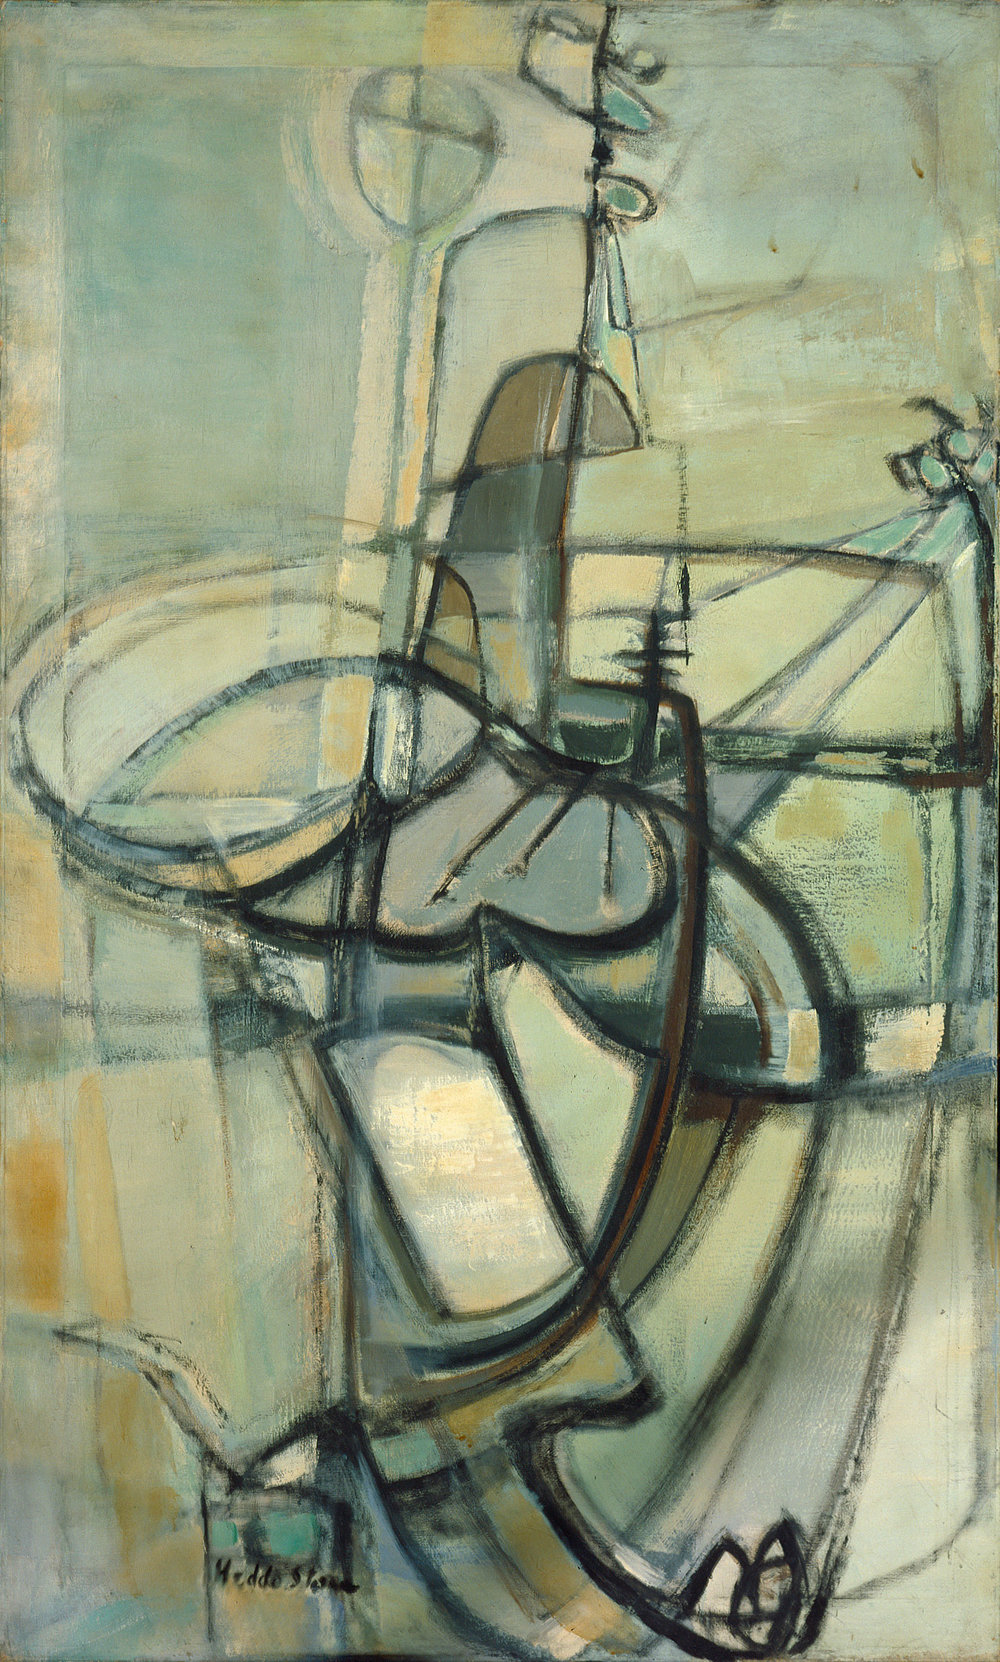 Hedda Sterne, #45, 1952-1953, Oil on canvas, 60 in. x 36 in.